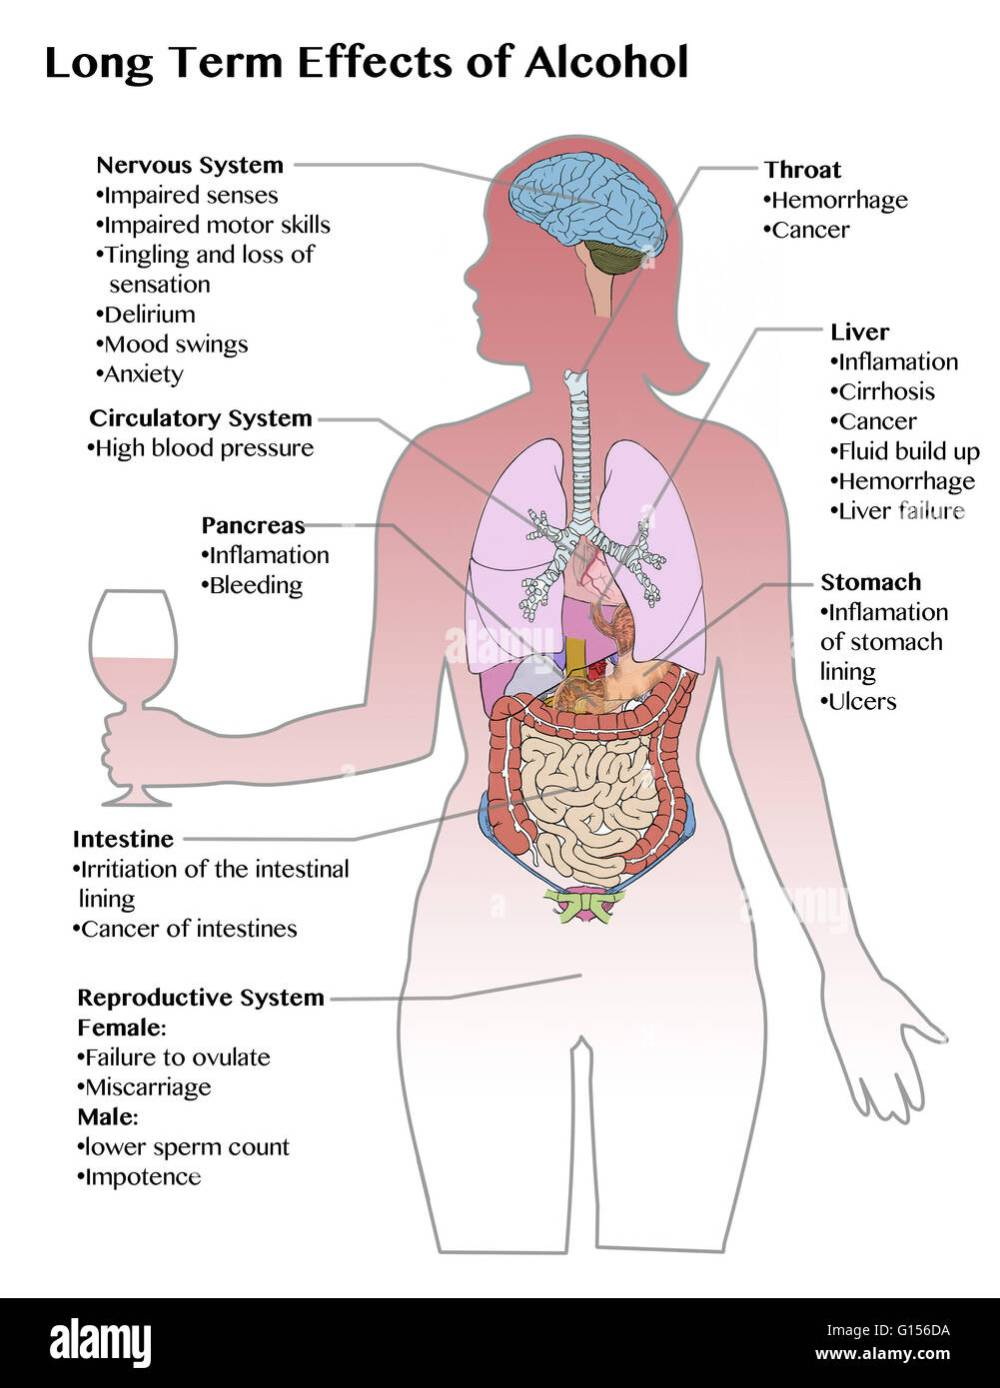 medium resolution of diagram showing the long term effects of excess alcohol consumption stock image